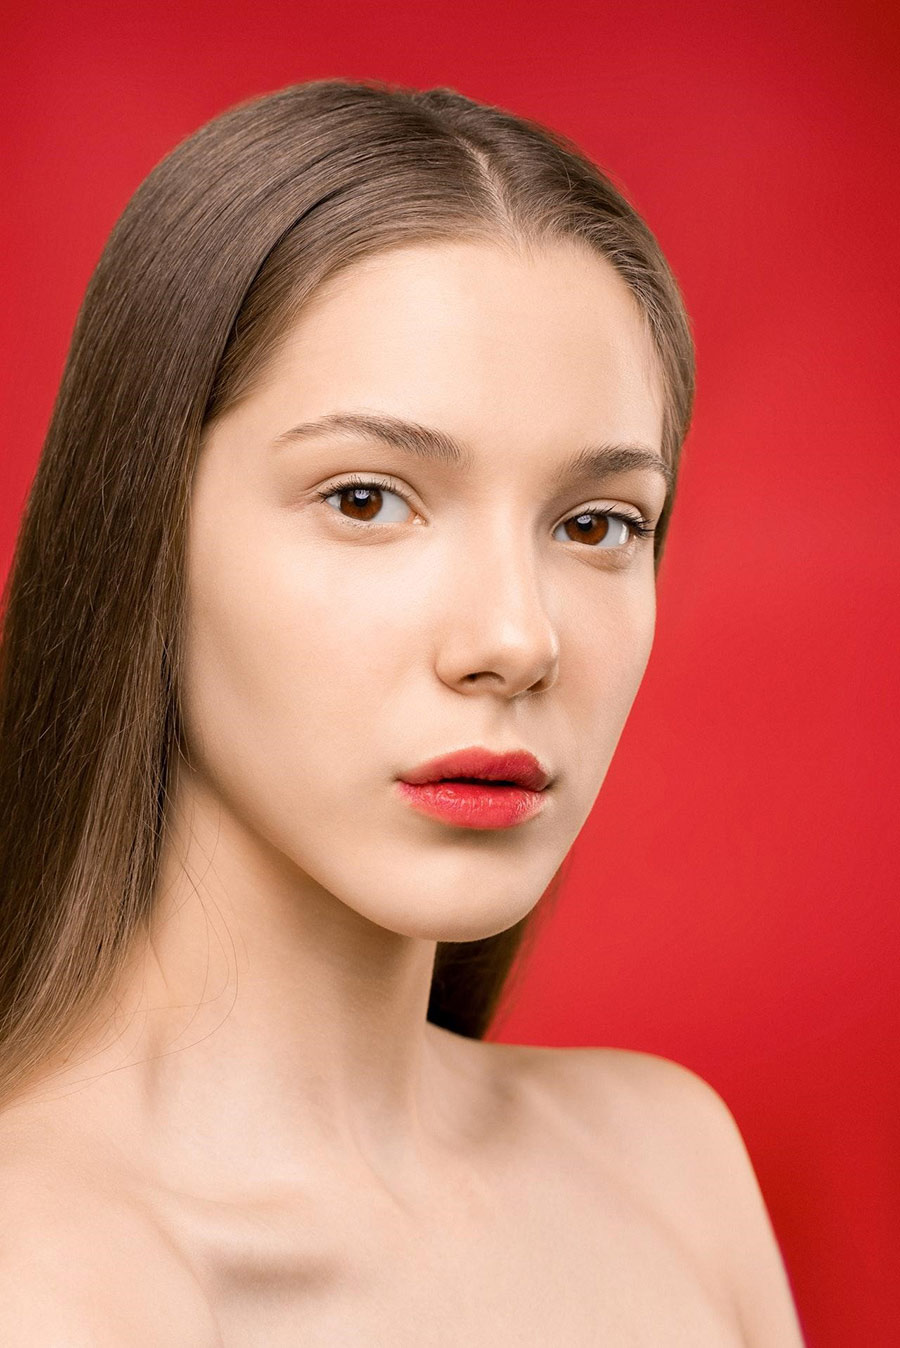 Non surgical rhinoplasty London can solve your problems without surgery.